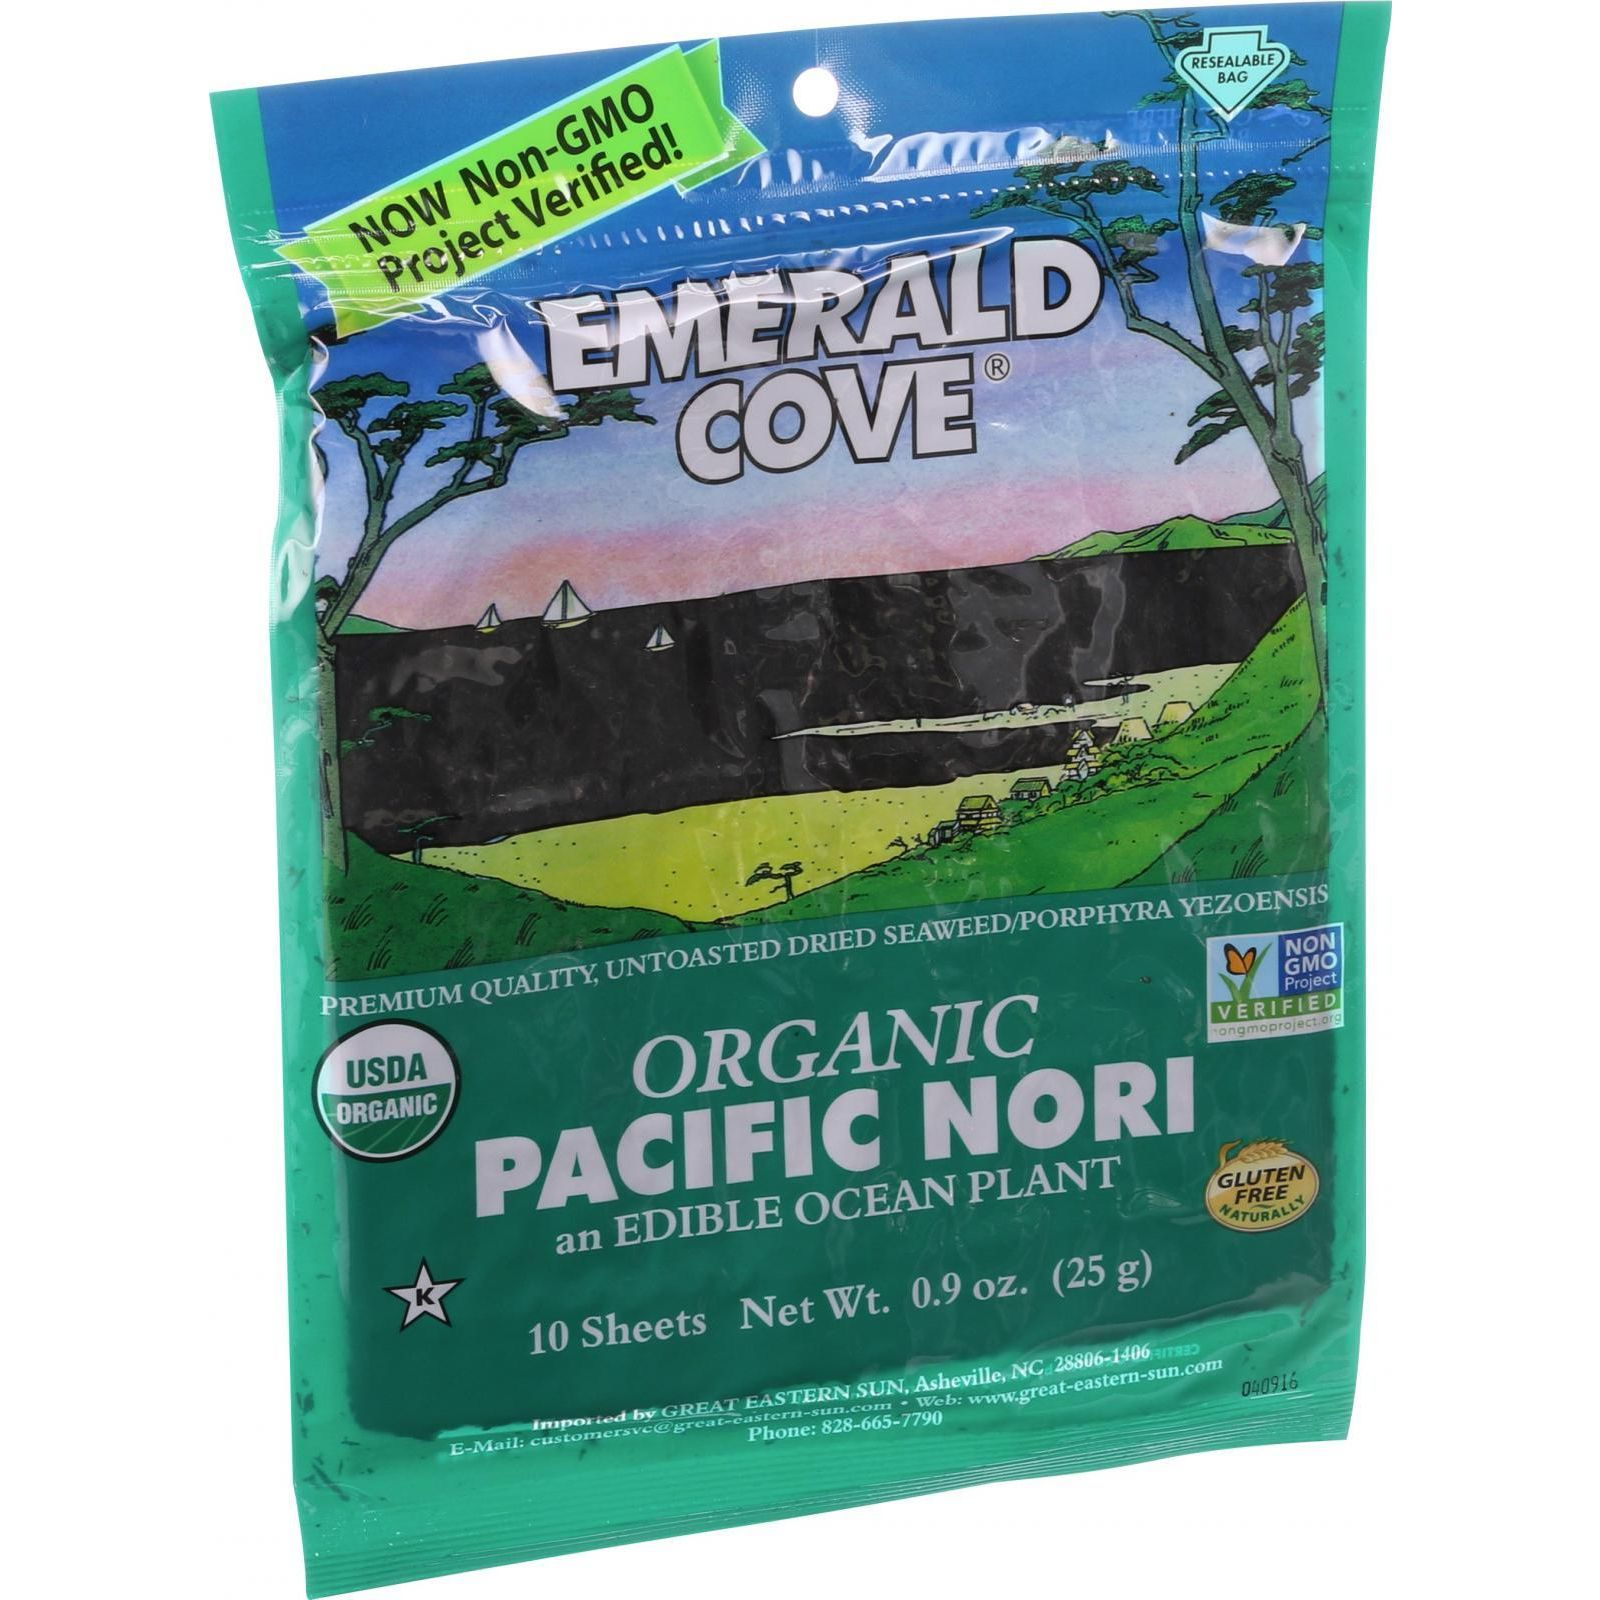 Emerald Cove Organic Pacific Nori Untoasted Hoshi Silver Grade .9 oz Case of 6 by